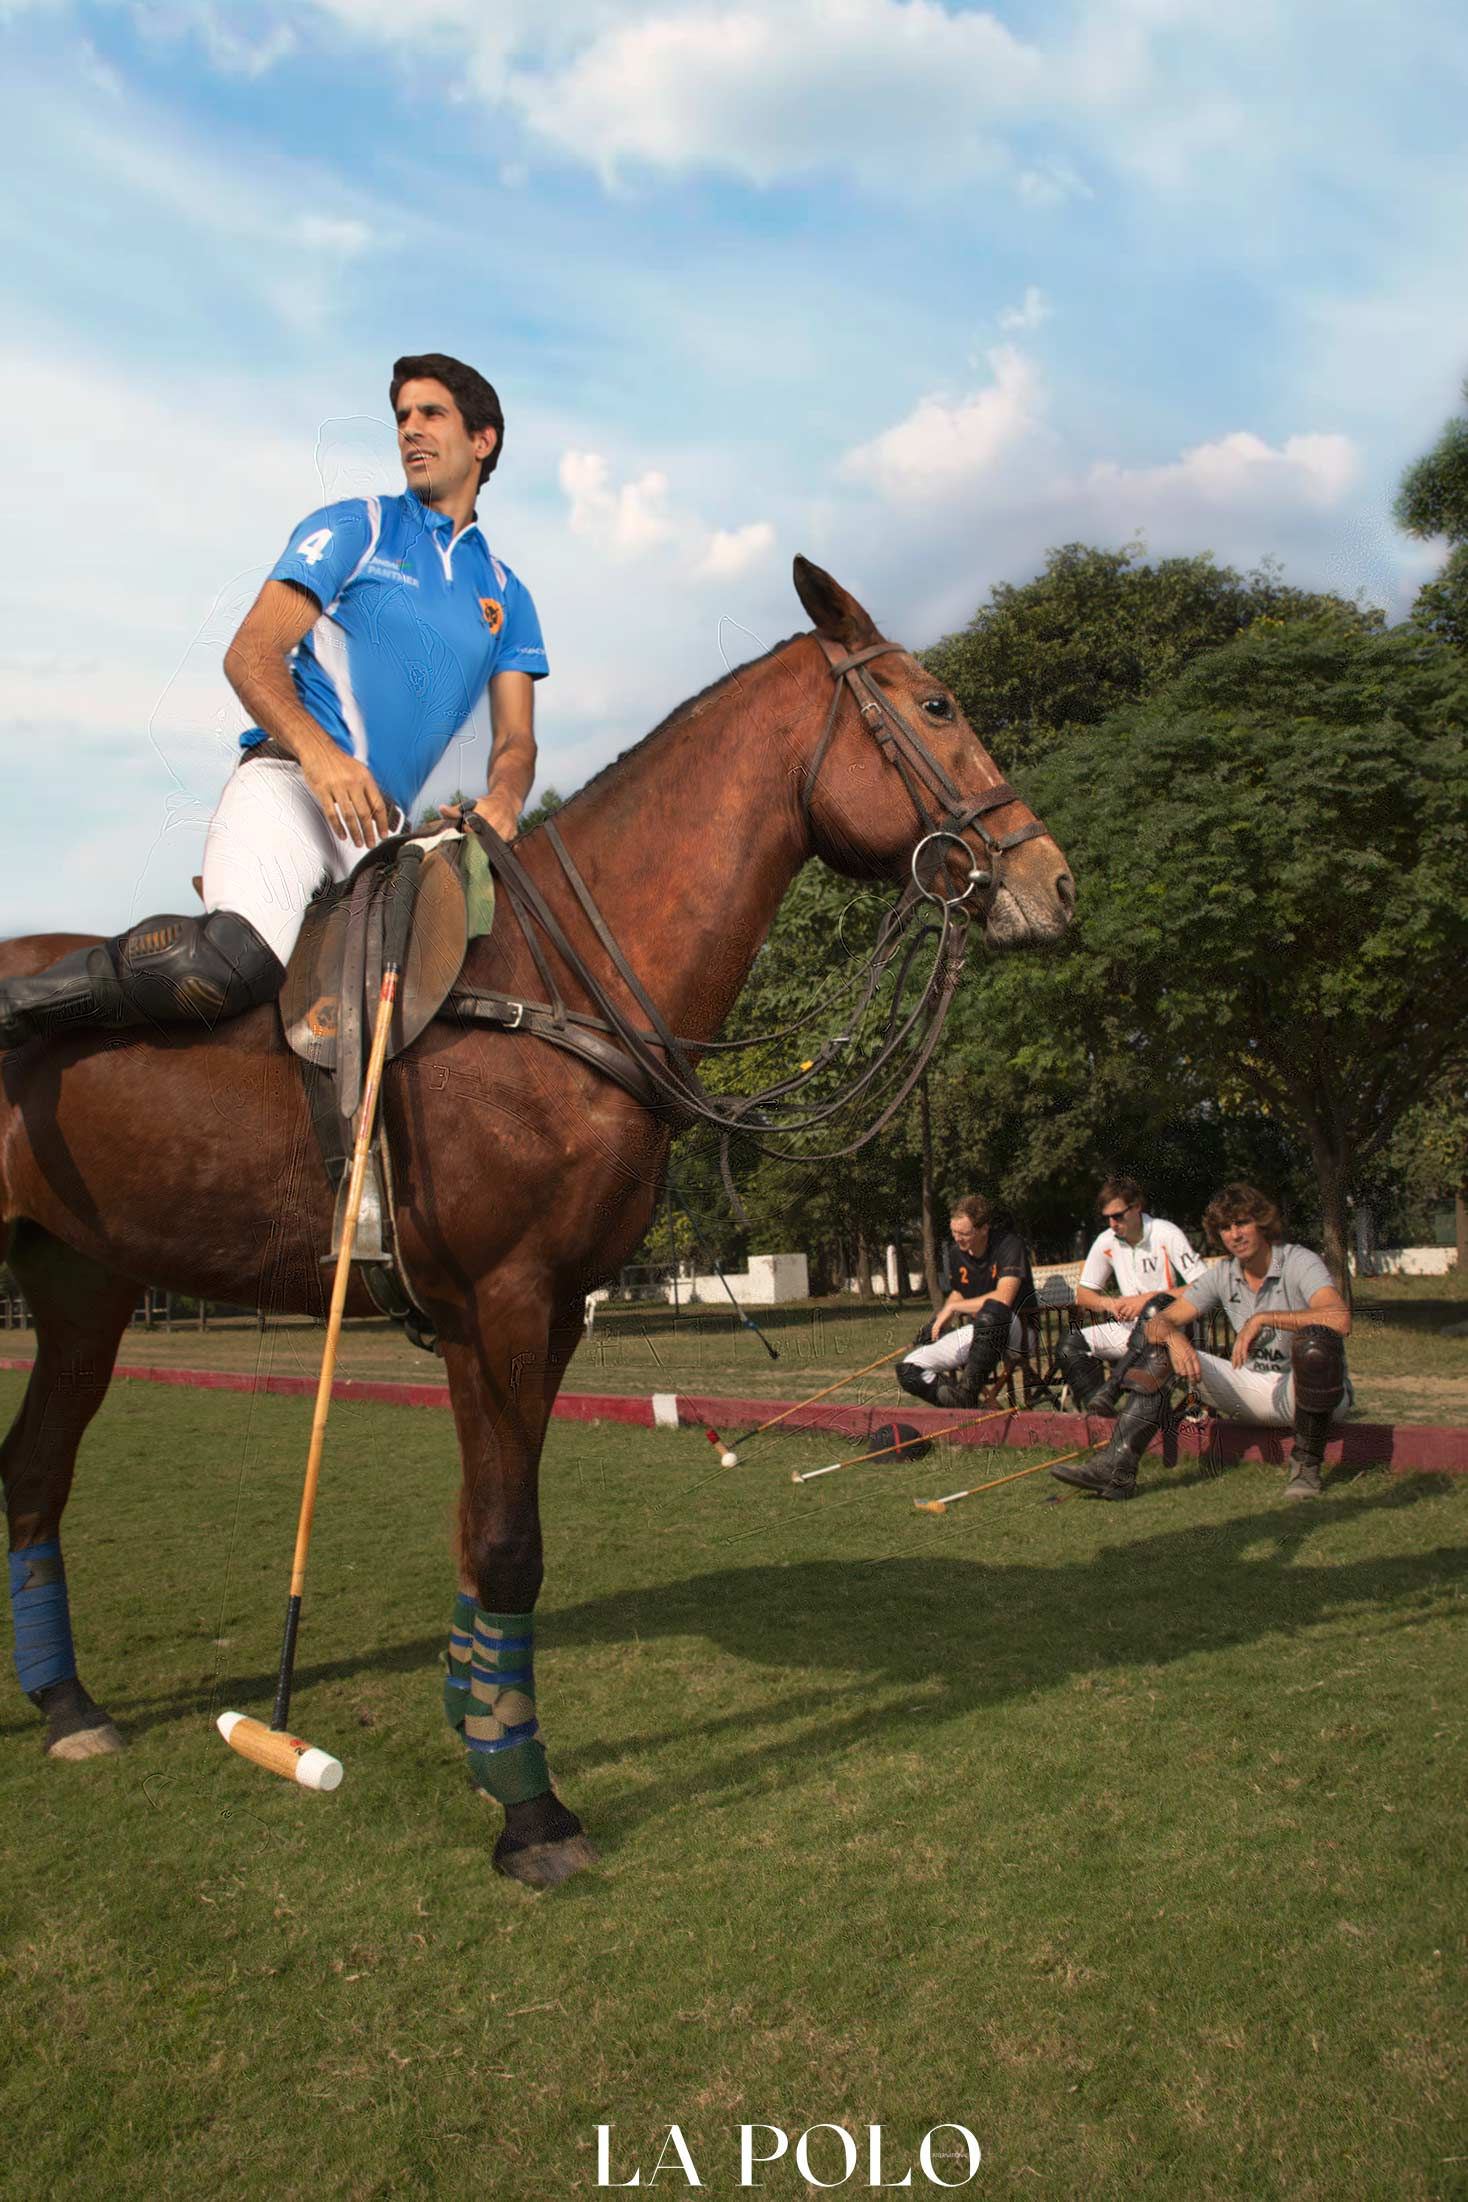 raul-laplacette-polo-player-lapolo